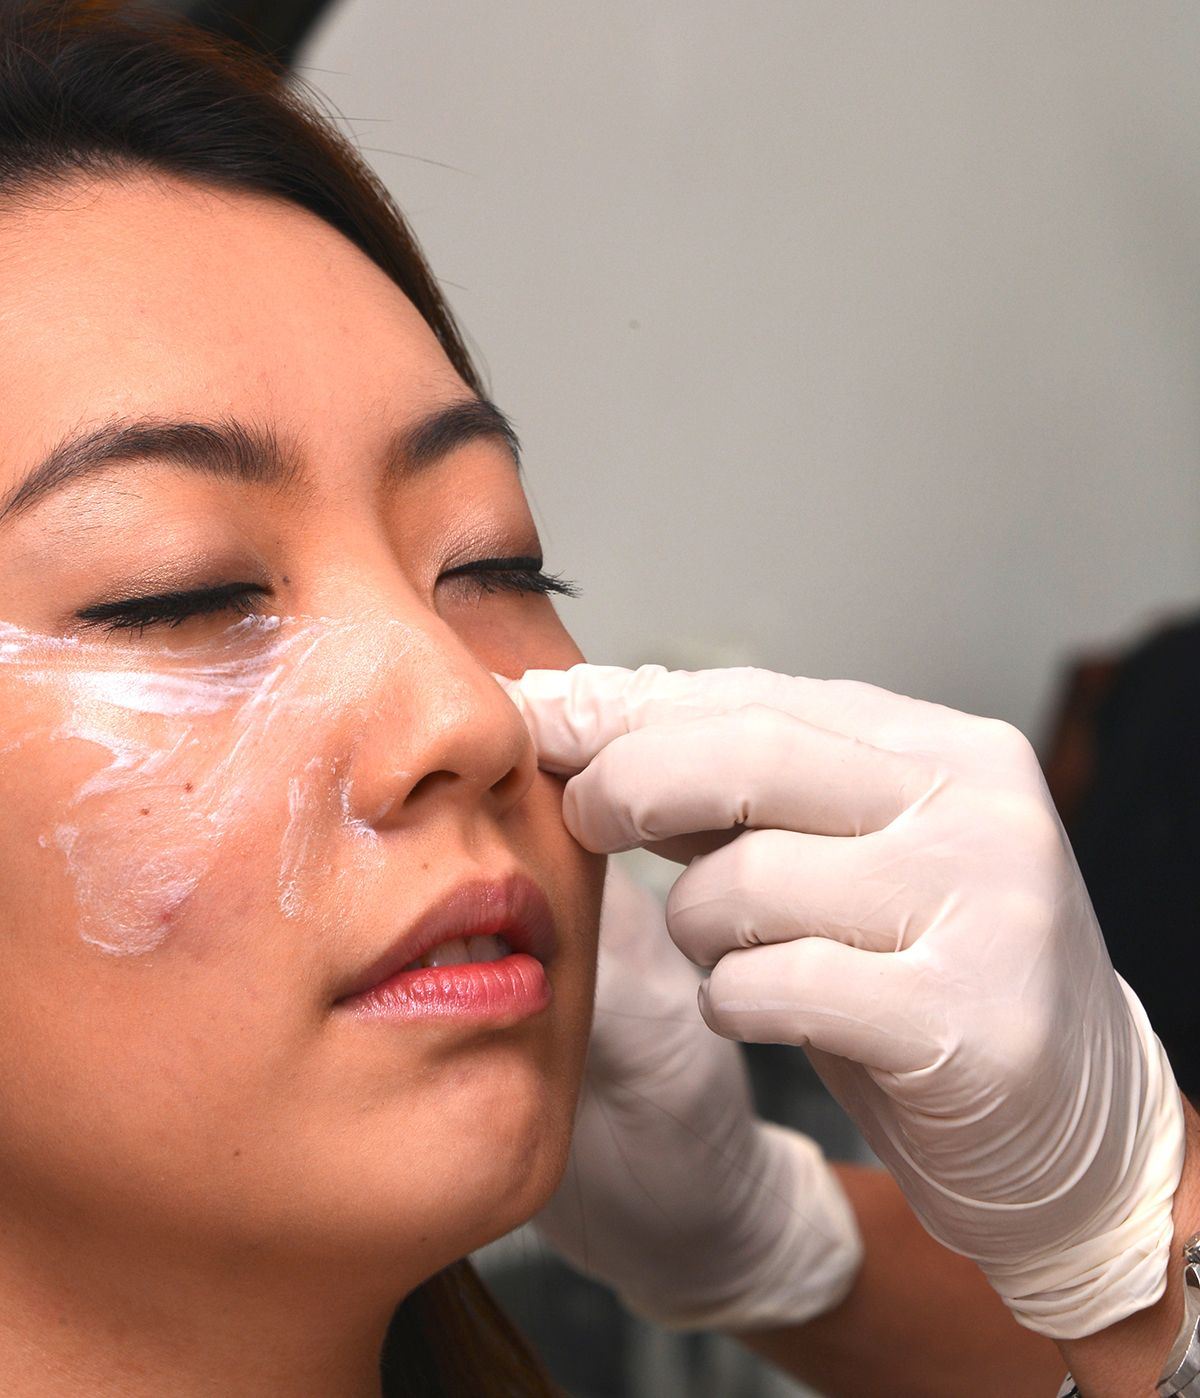 Rejuran Skin Healer Skin Rejuvenation Halley Medical Aesthetics Singapore